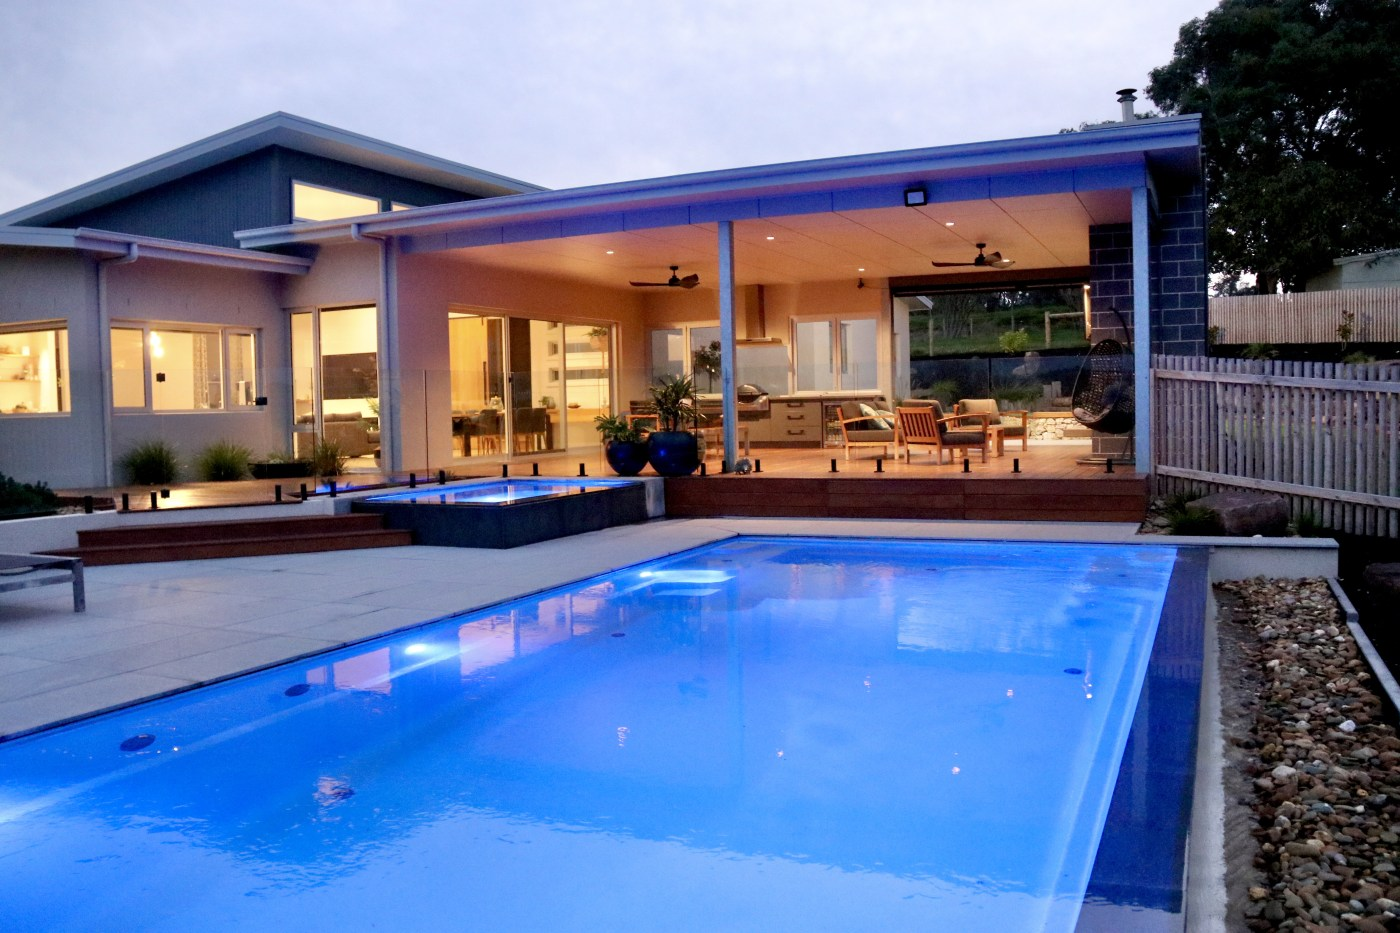 Compass Pools Melbourne Leongatha pool and spa combo Showing the house and spa